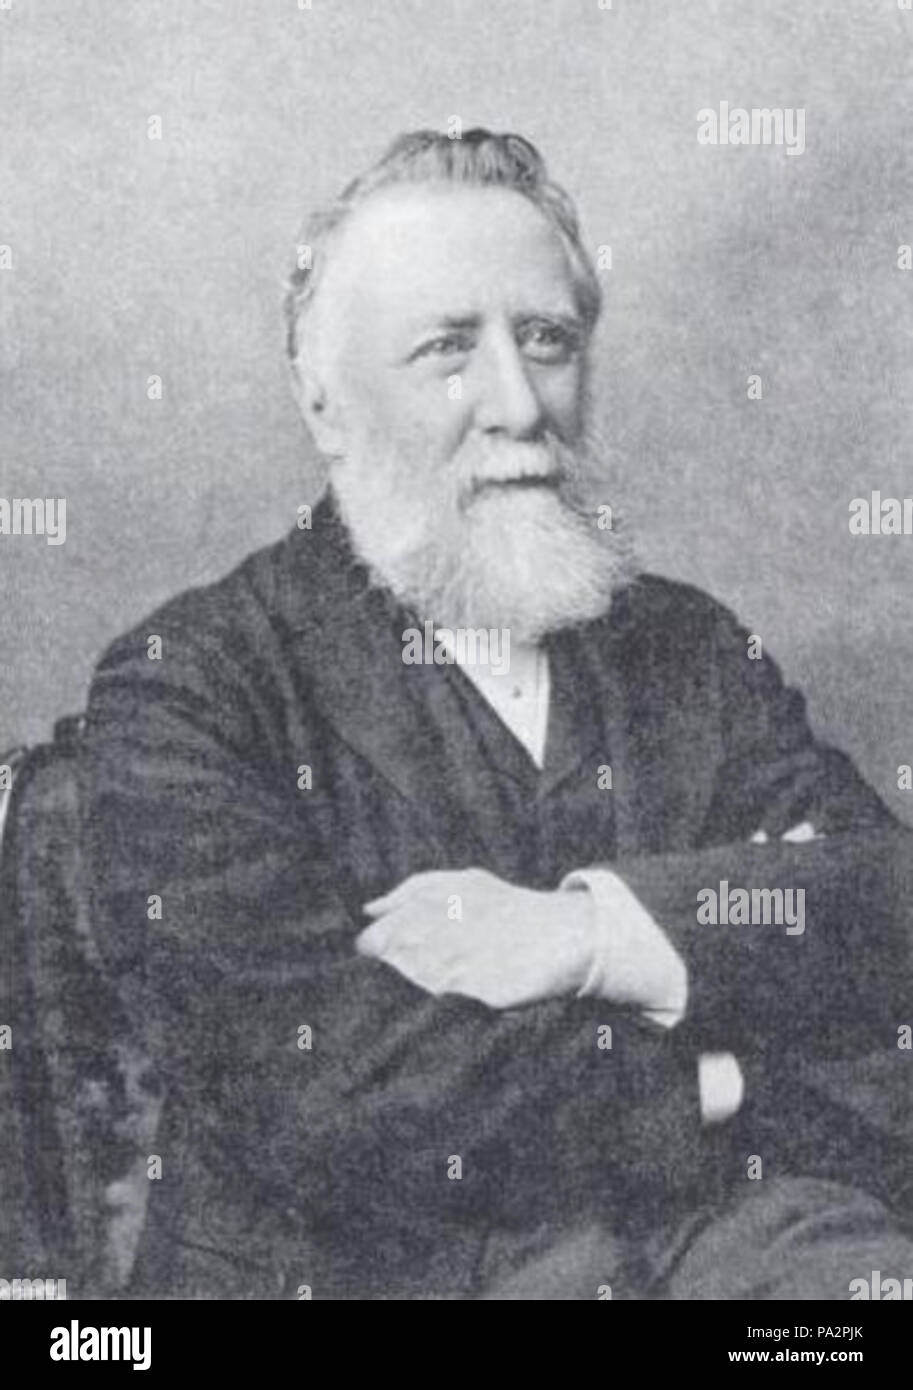 . Photo of meteorologist George James Symons, 1838 - 1900. Unknown date but Published in 1900 in conjunction with his obituary in Quarterly Journal of the Royal Meteorological Society. 707 GeorgeJamesSymons(1838-1900) - Stock Image